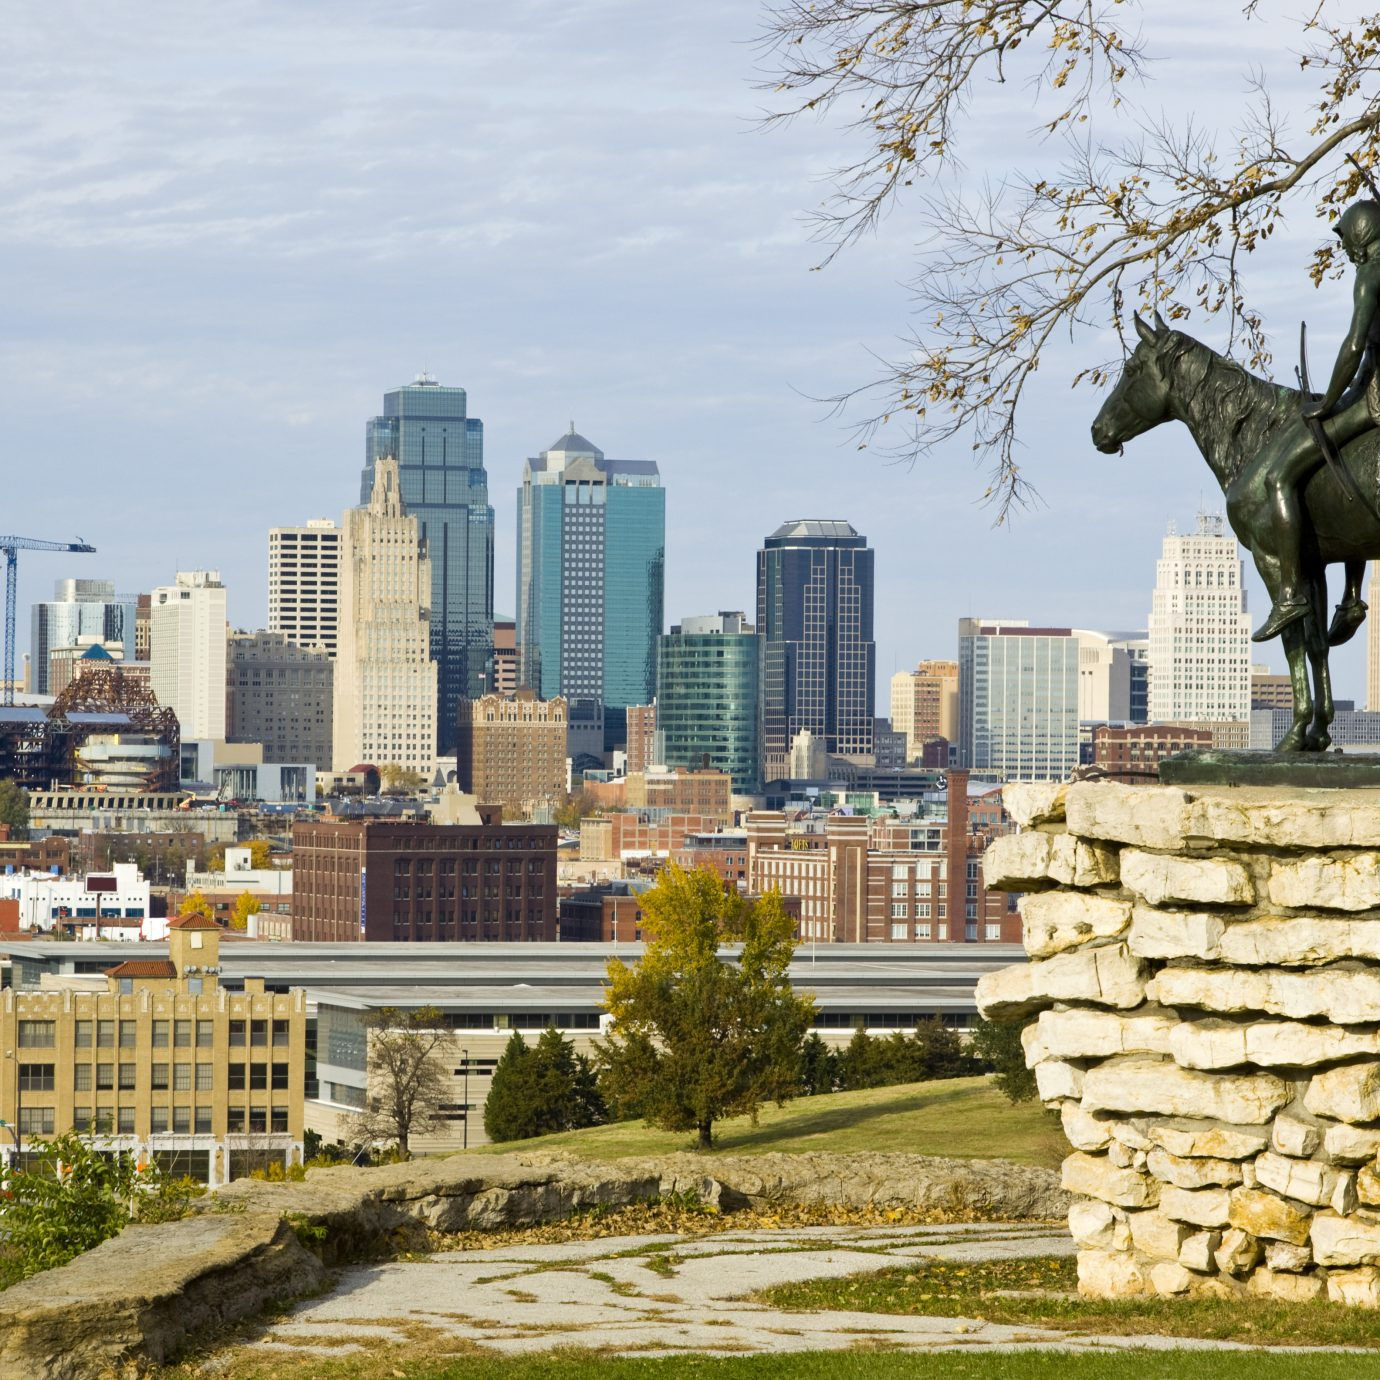 A view of downtown Kansas City, Missouri with the Scout statue in the foreground